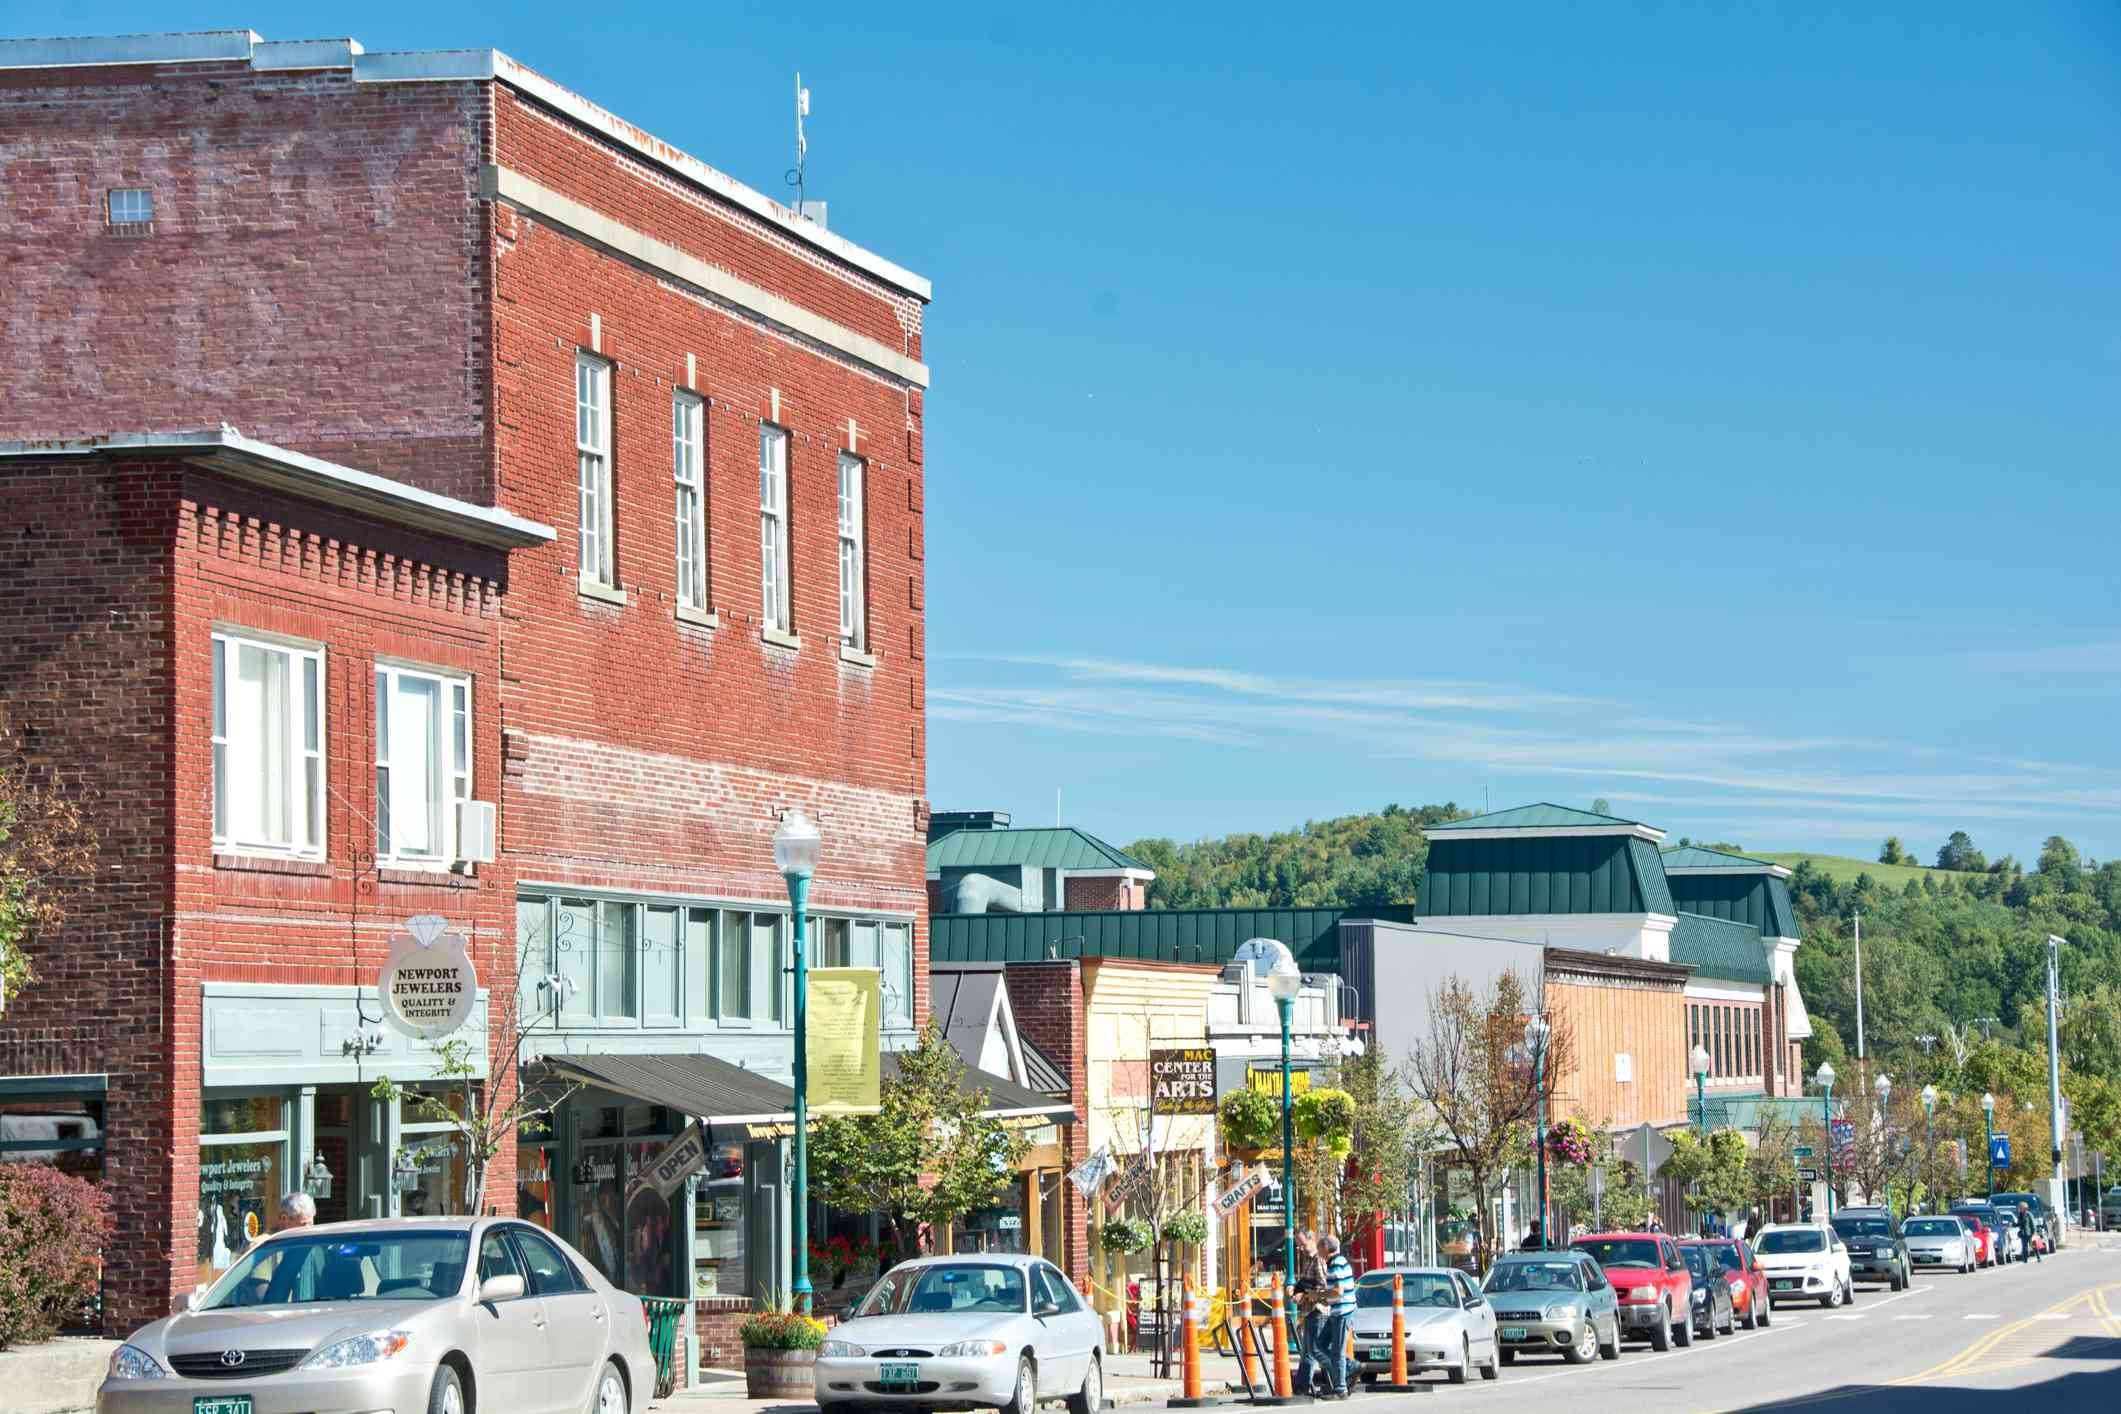 Parked cars along Main Street in Downtown Newport, Vermont